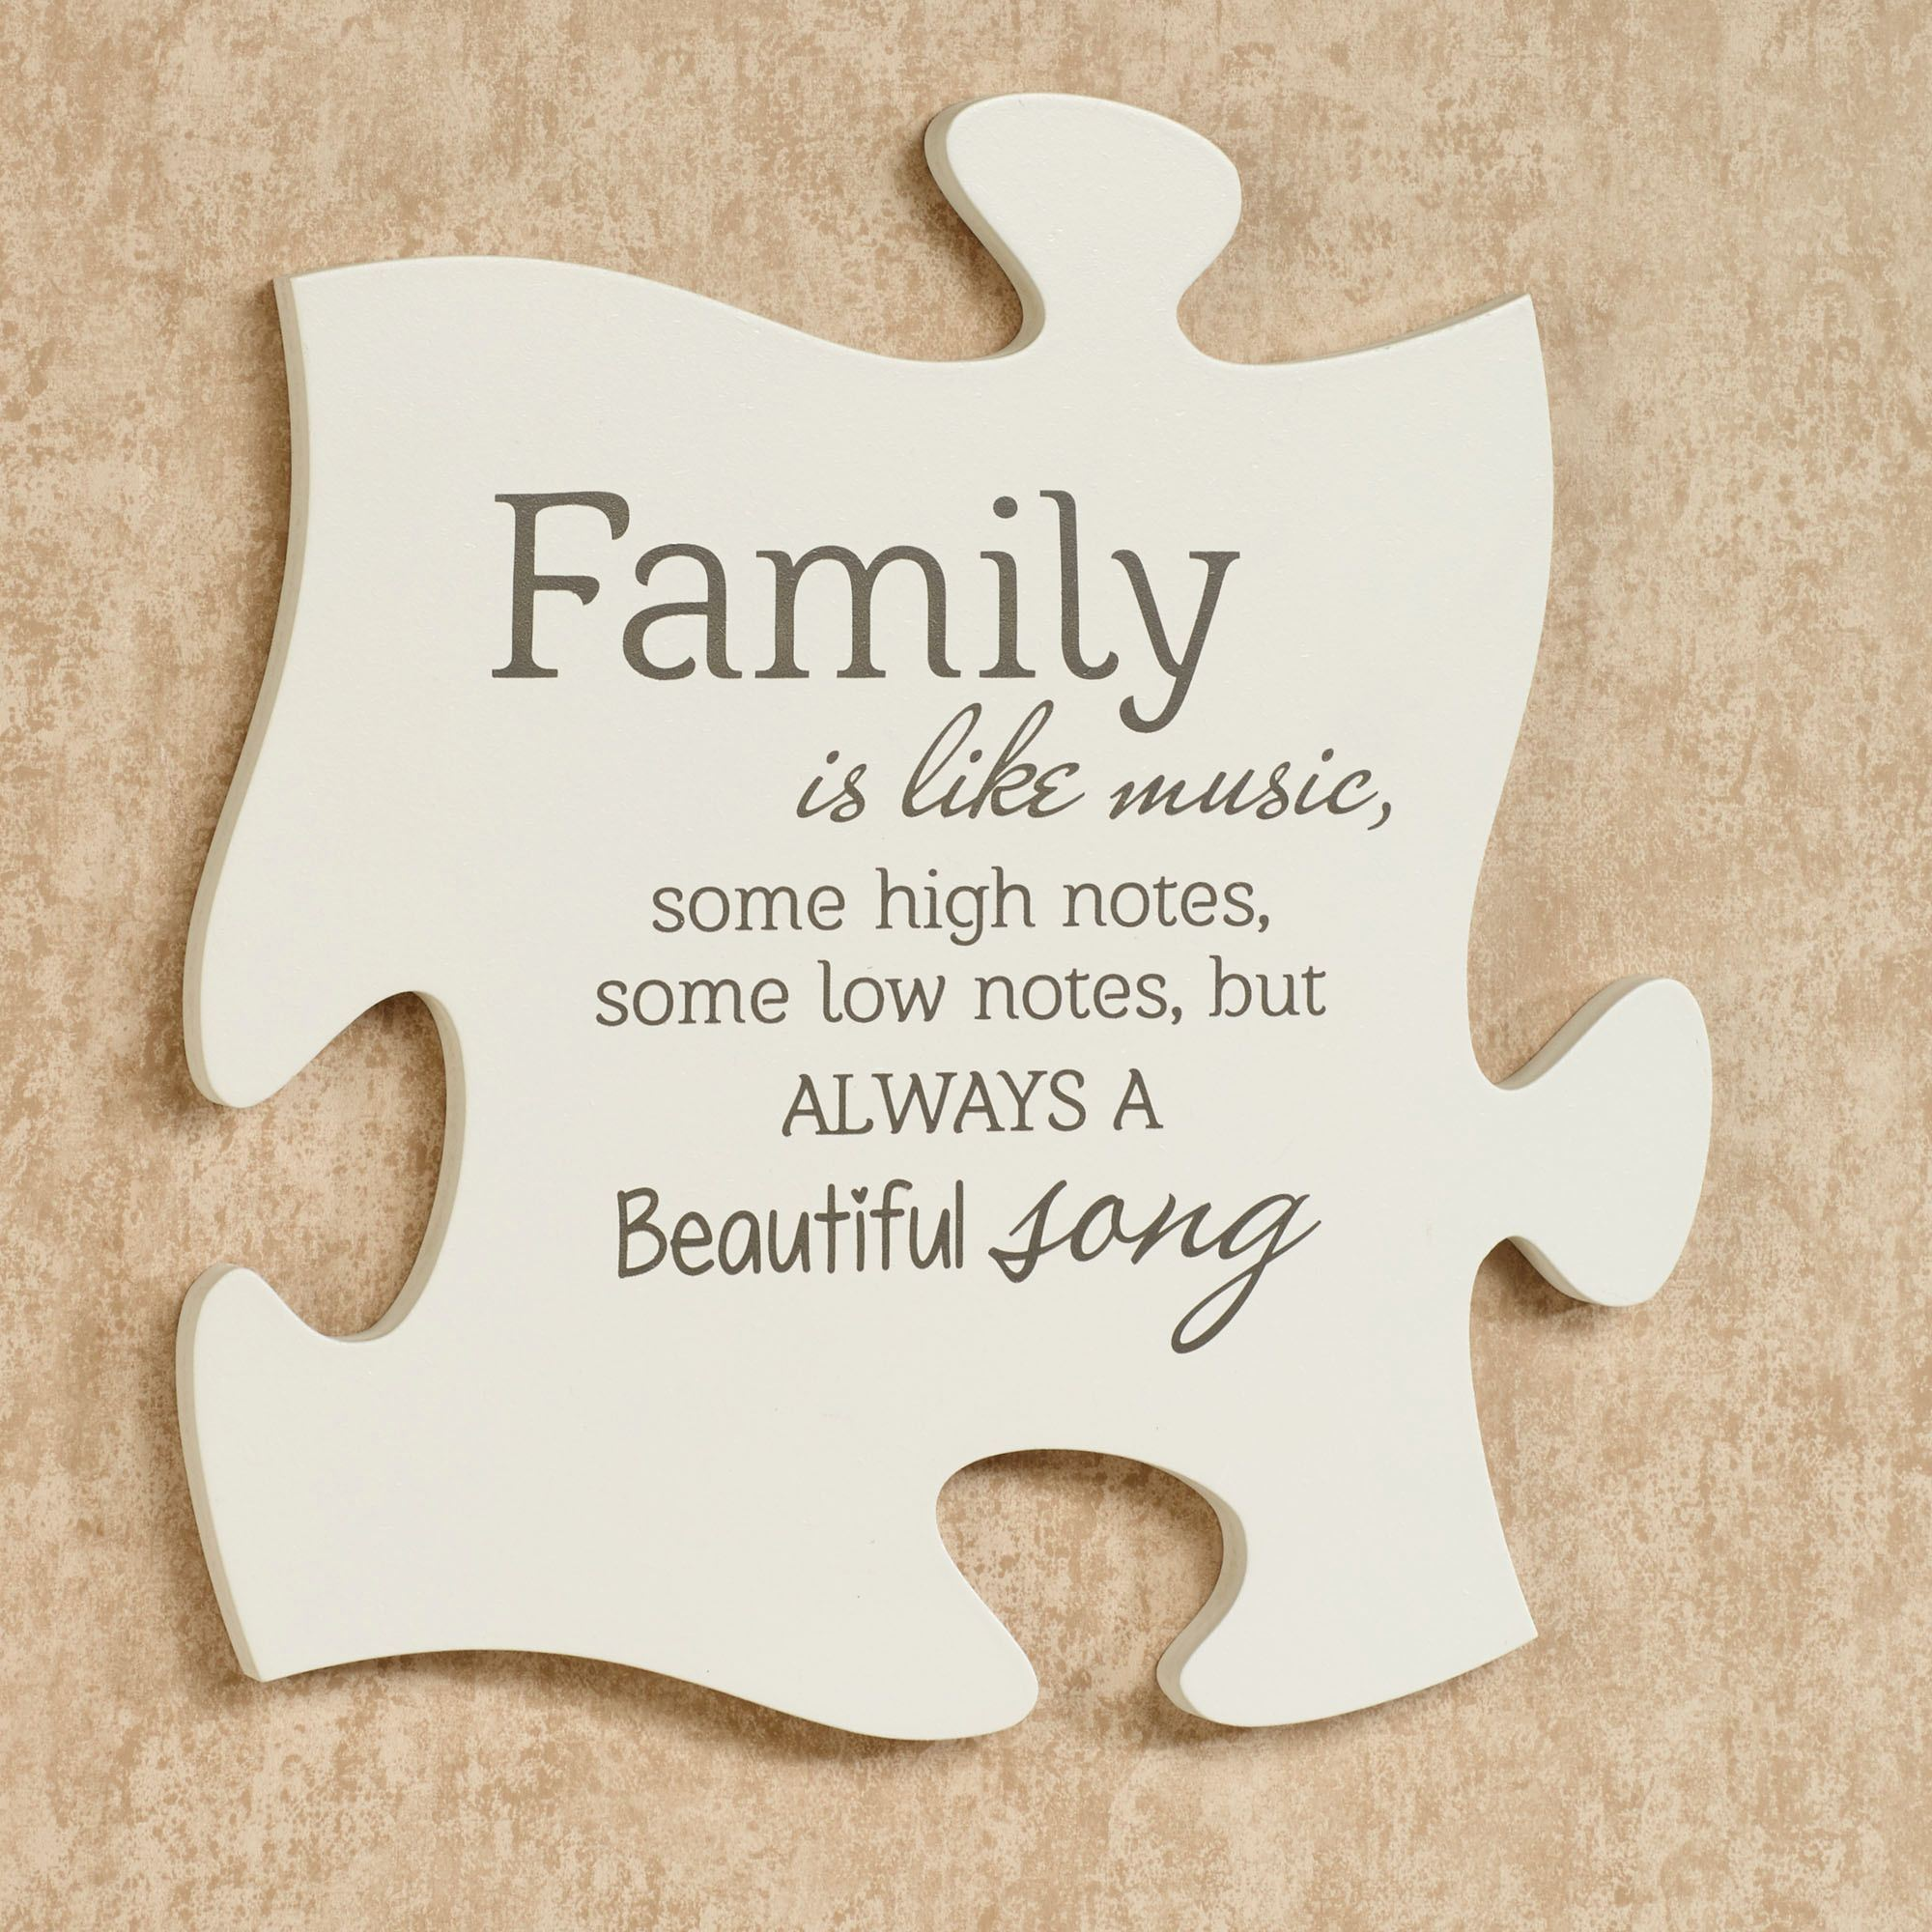 Every Family Photo Frame Puzzle Piece Wall Art